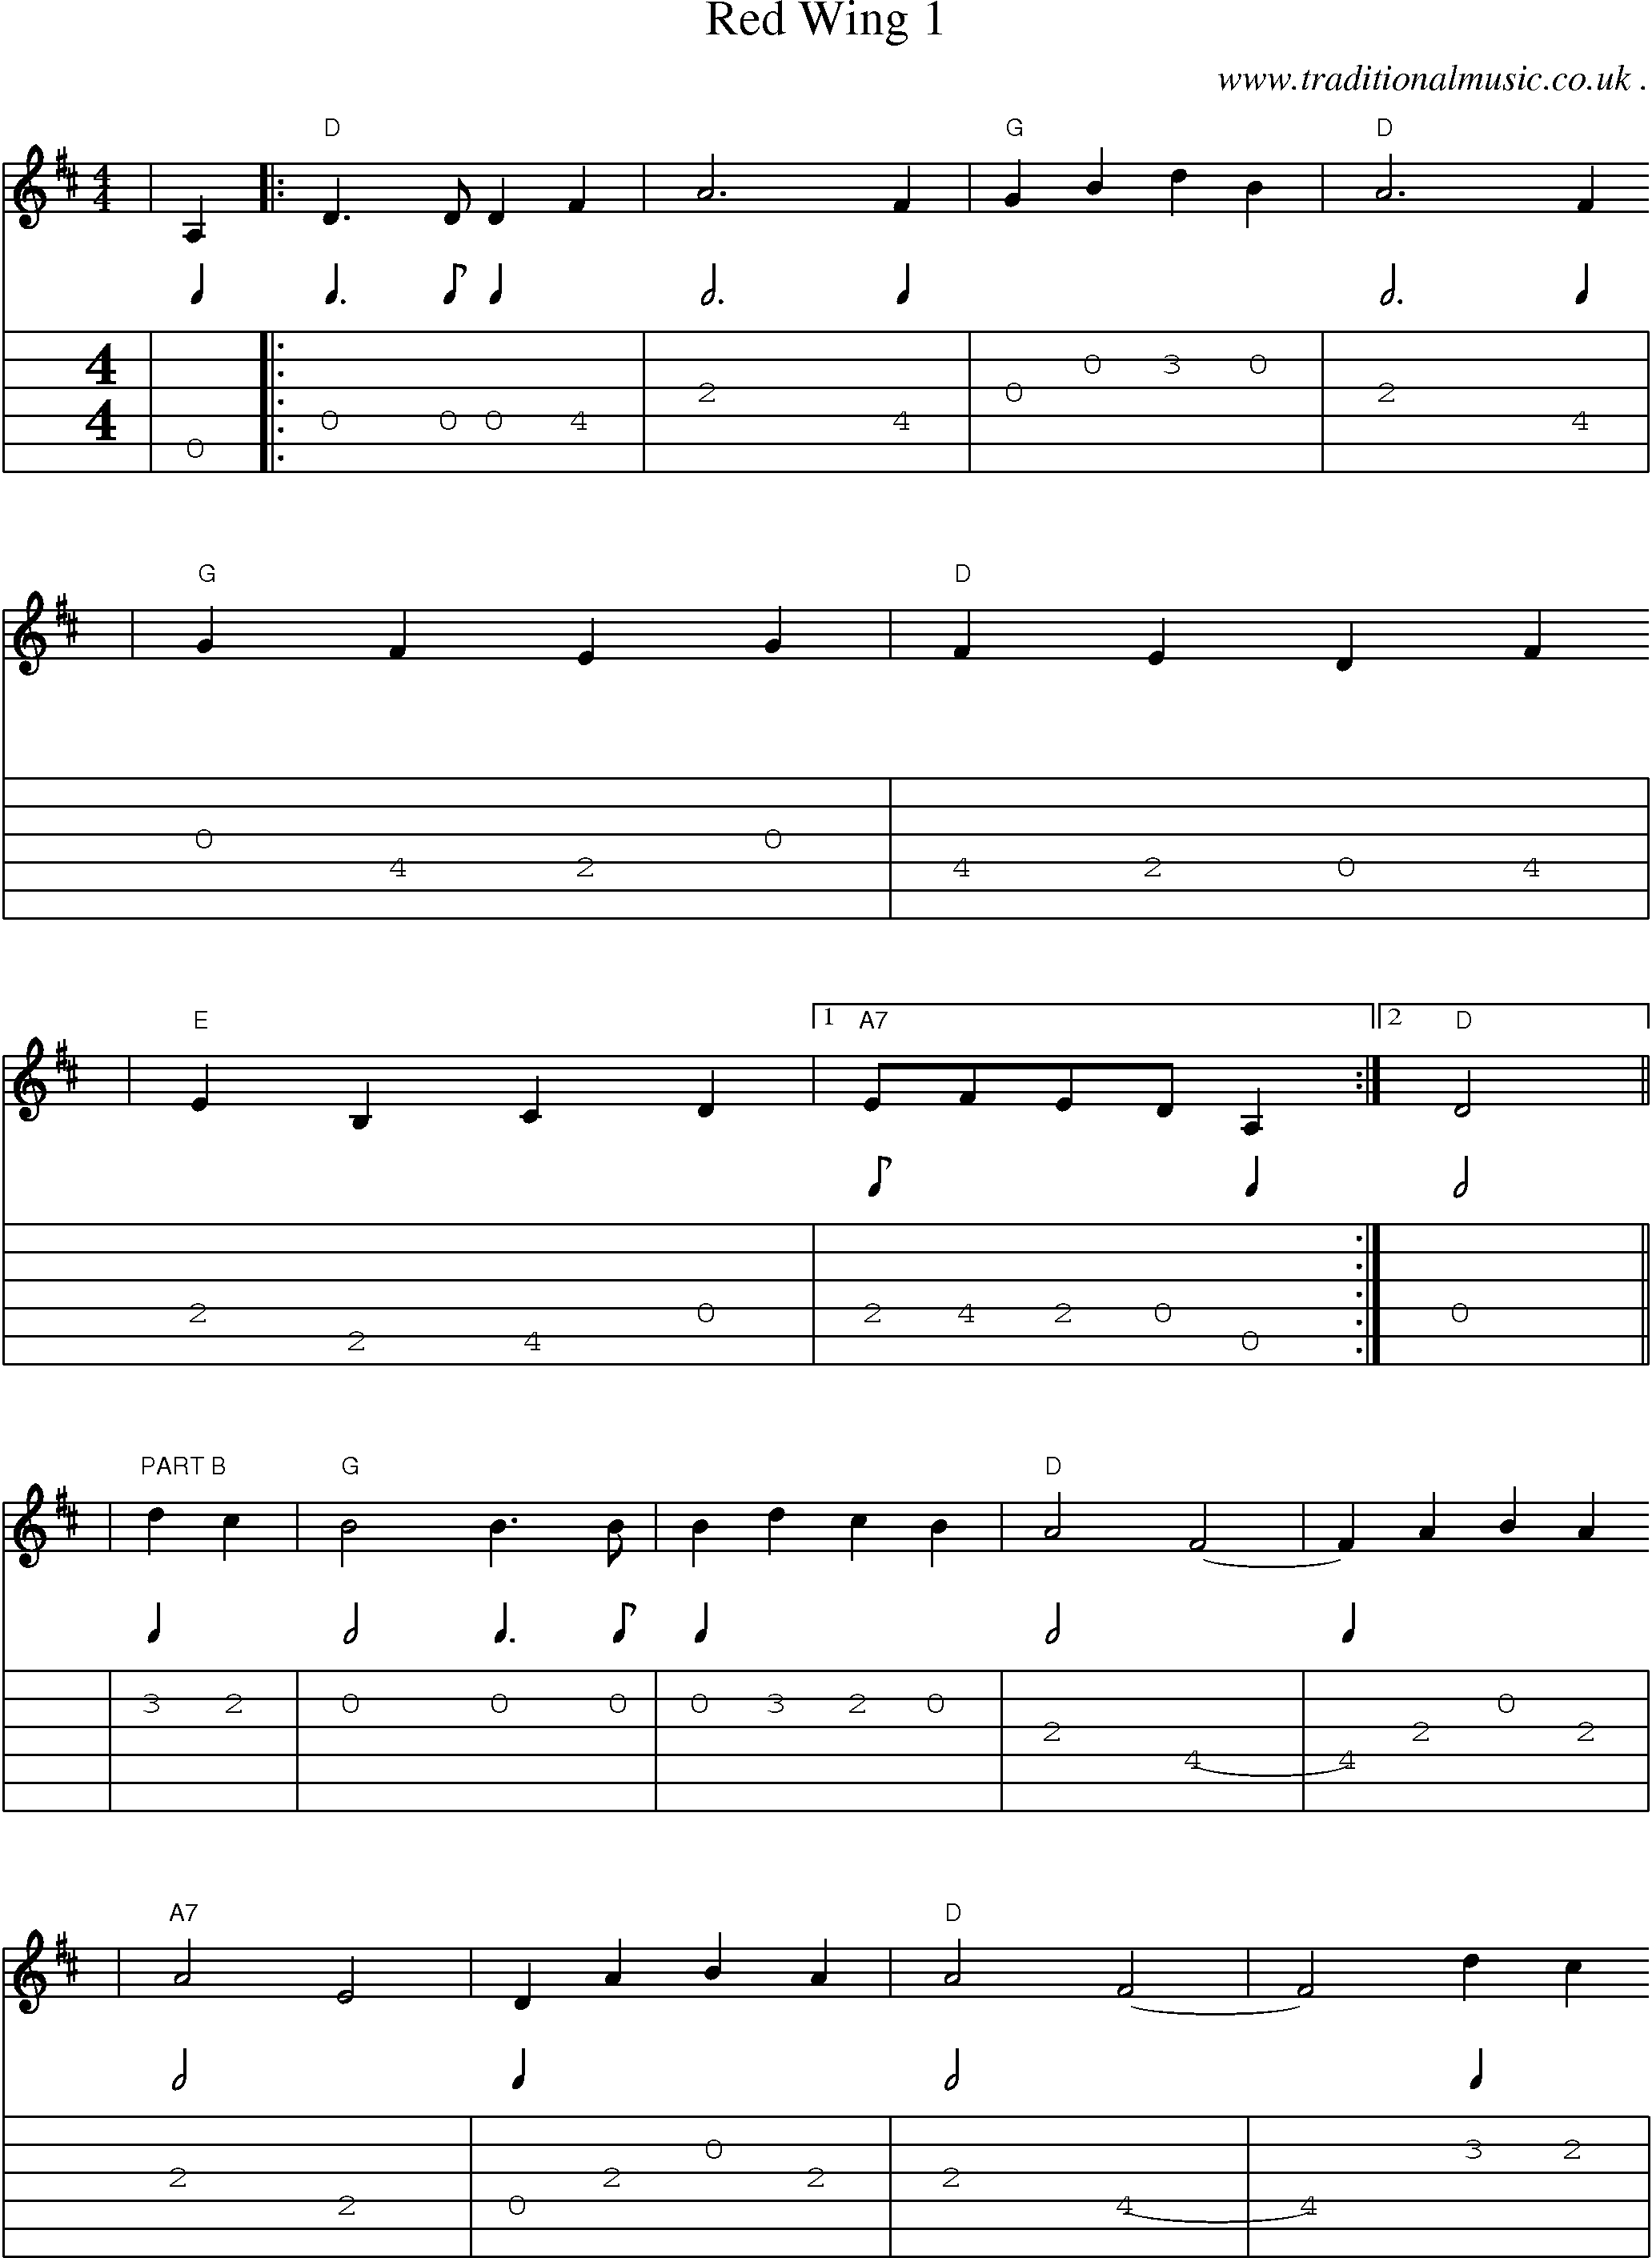 American Old Time Music Scores And Tabs For Guitar Red Wing 1